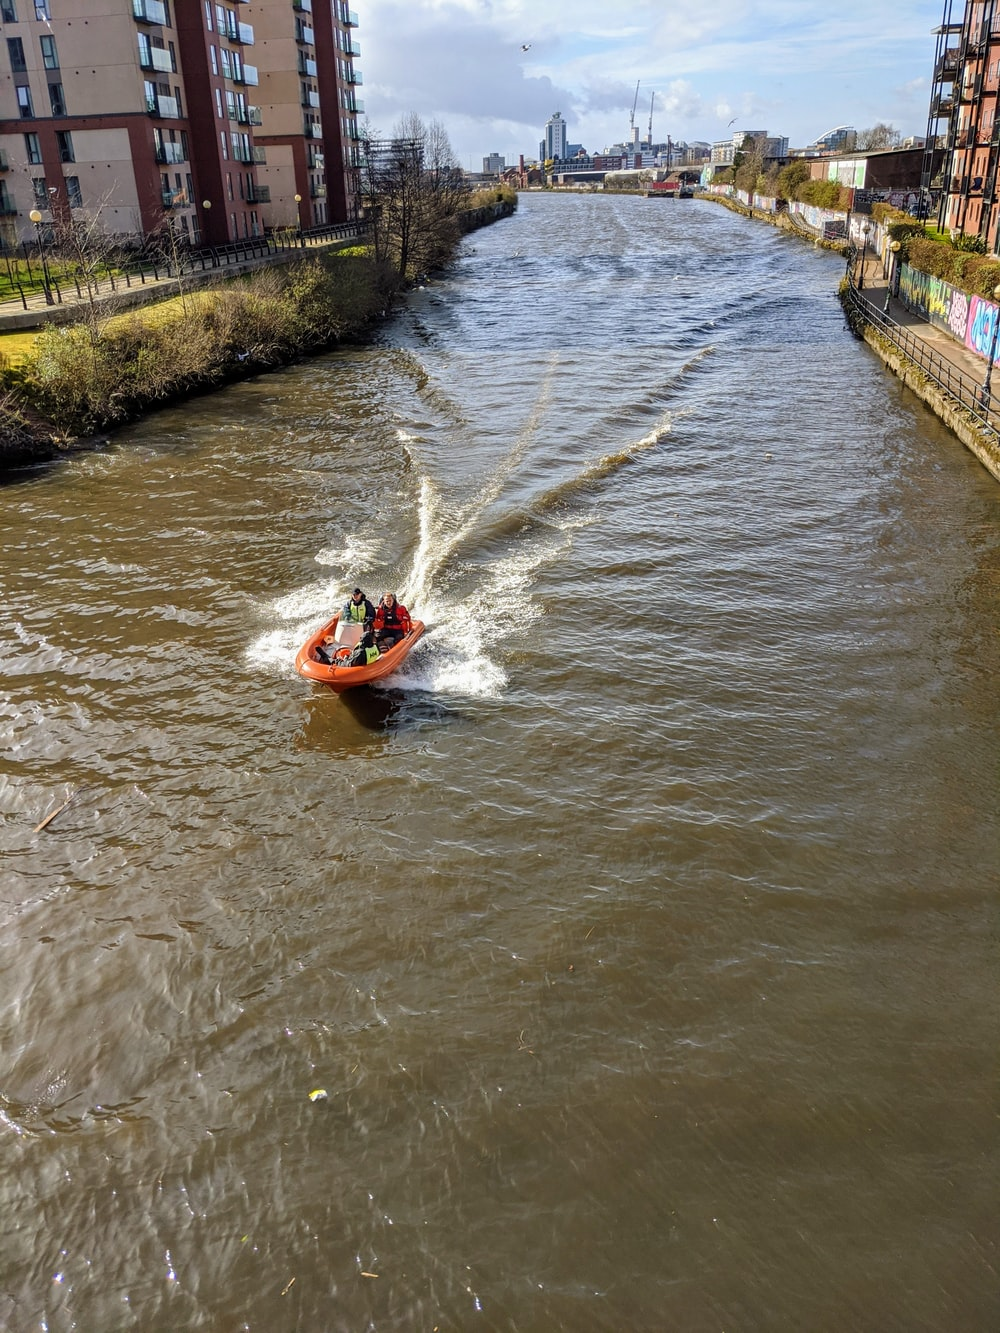 man in red life vest riding red and white inflatable boat on river during daytime